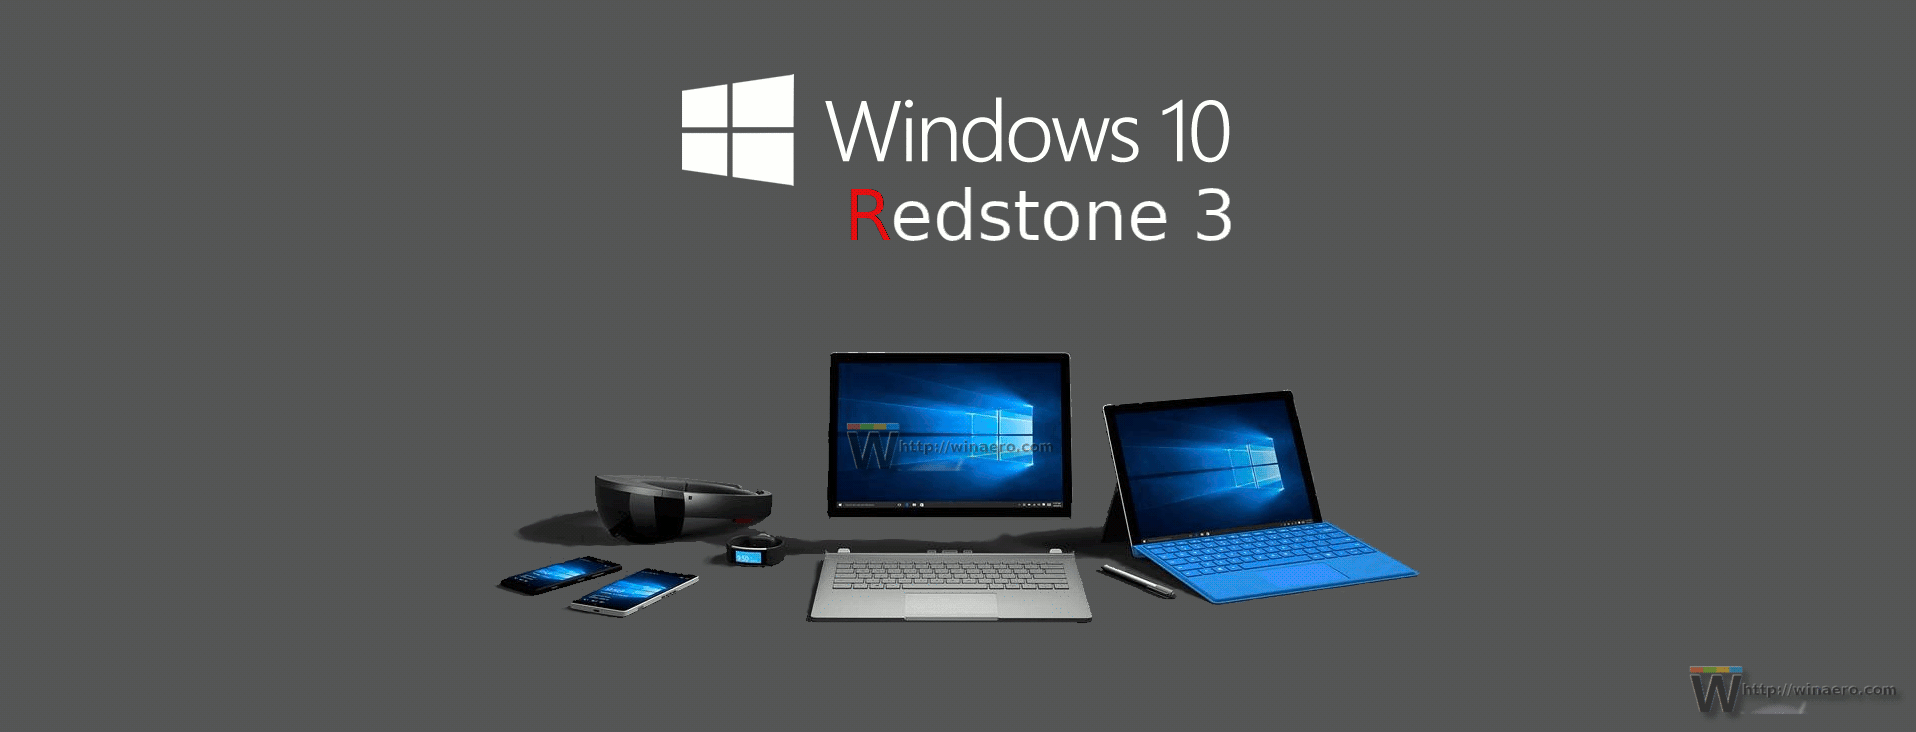 Devices Windows 10 Redstone 3 Logo Banner